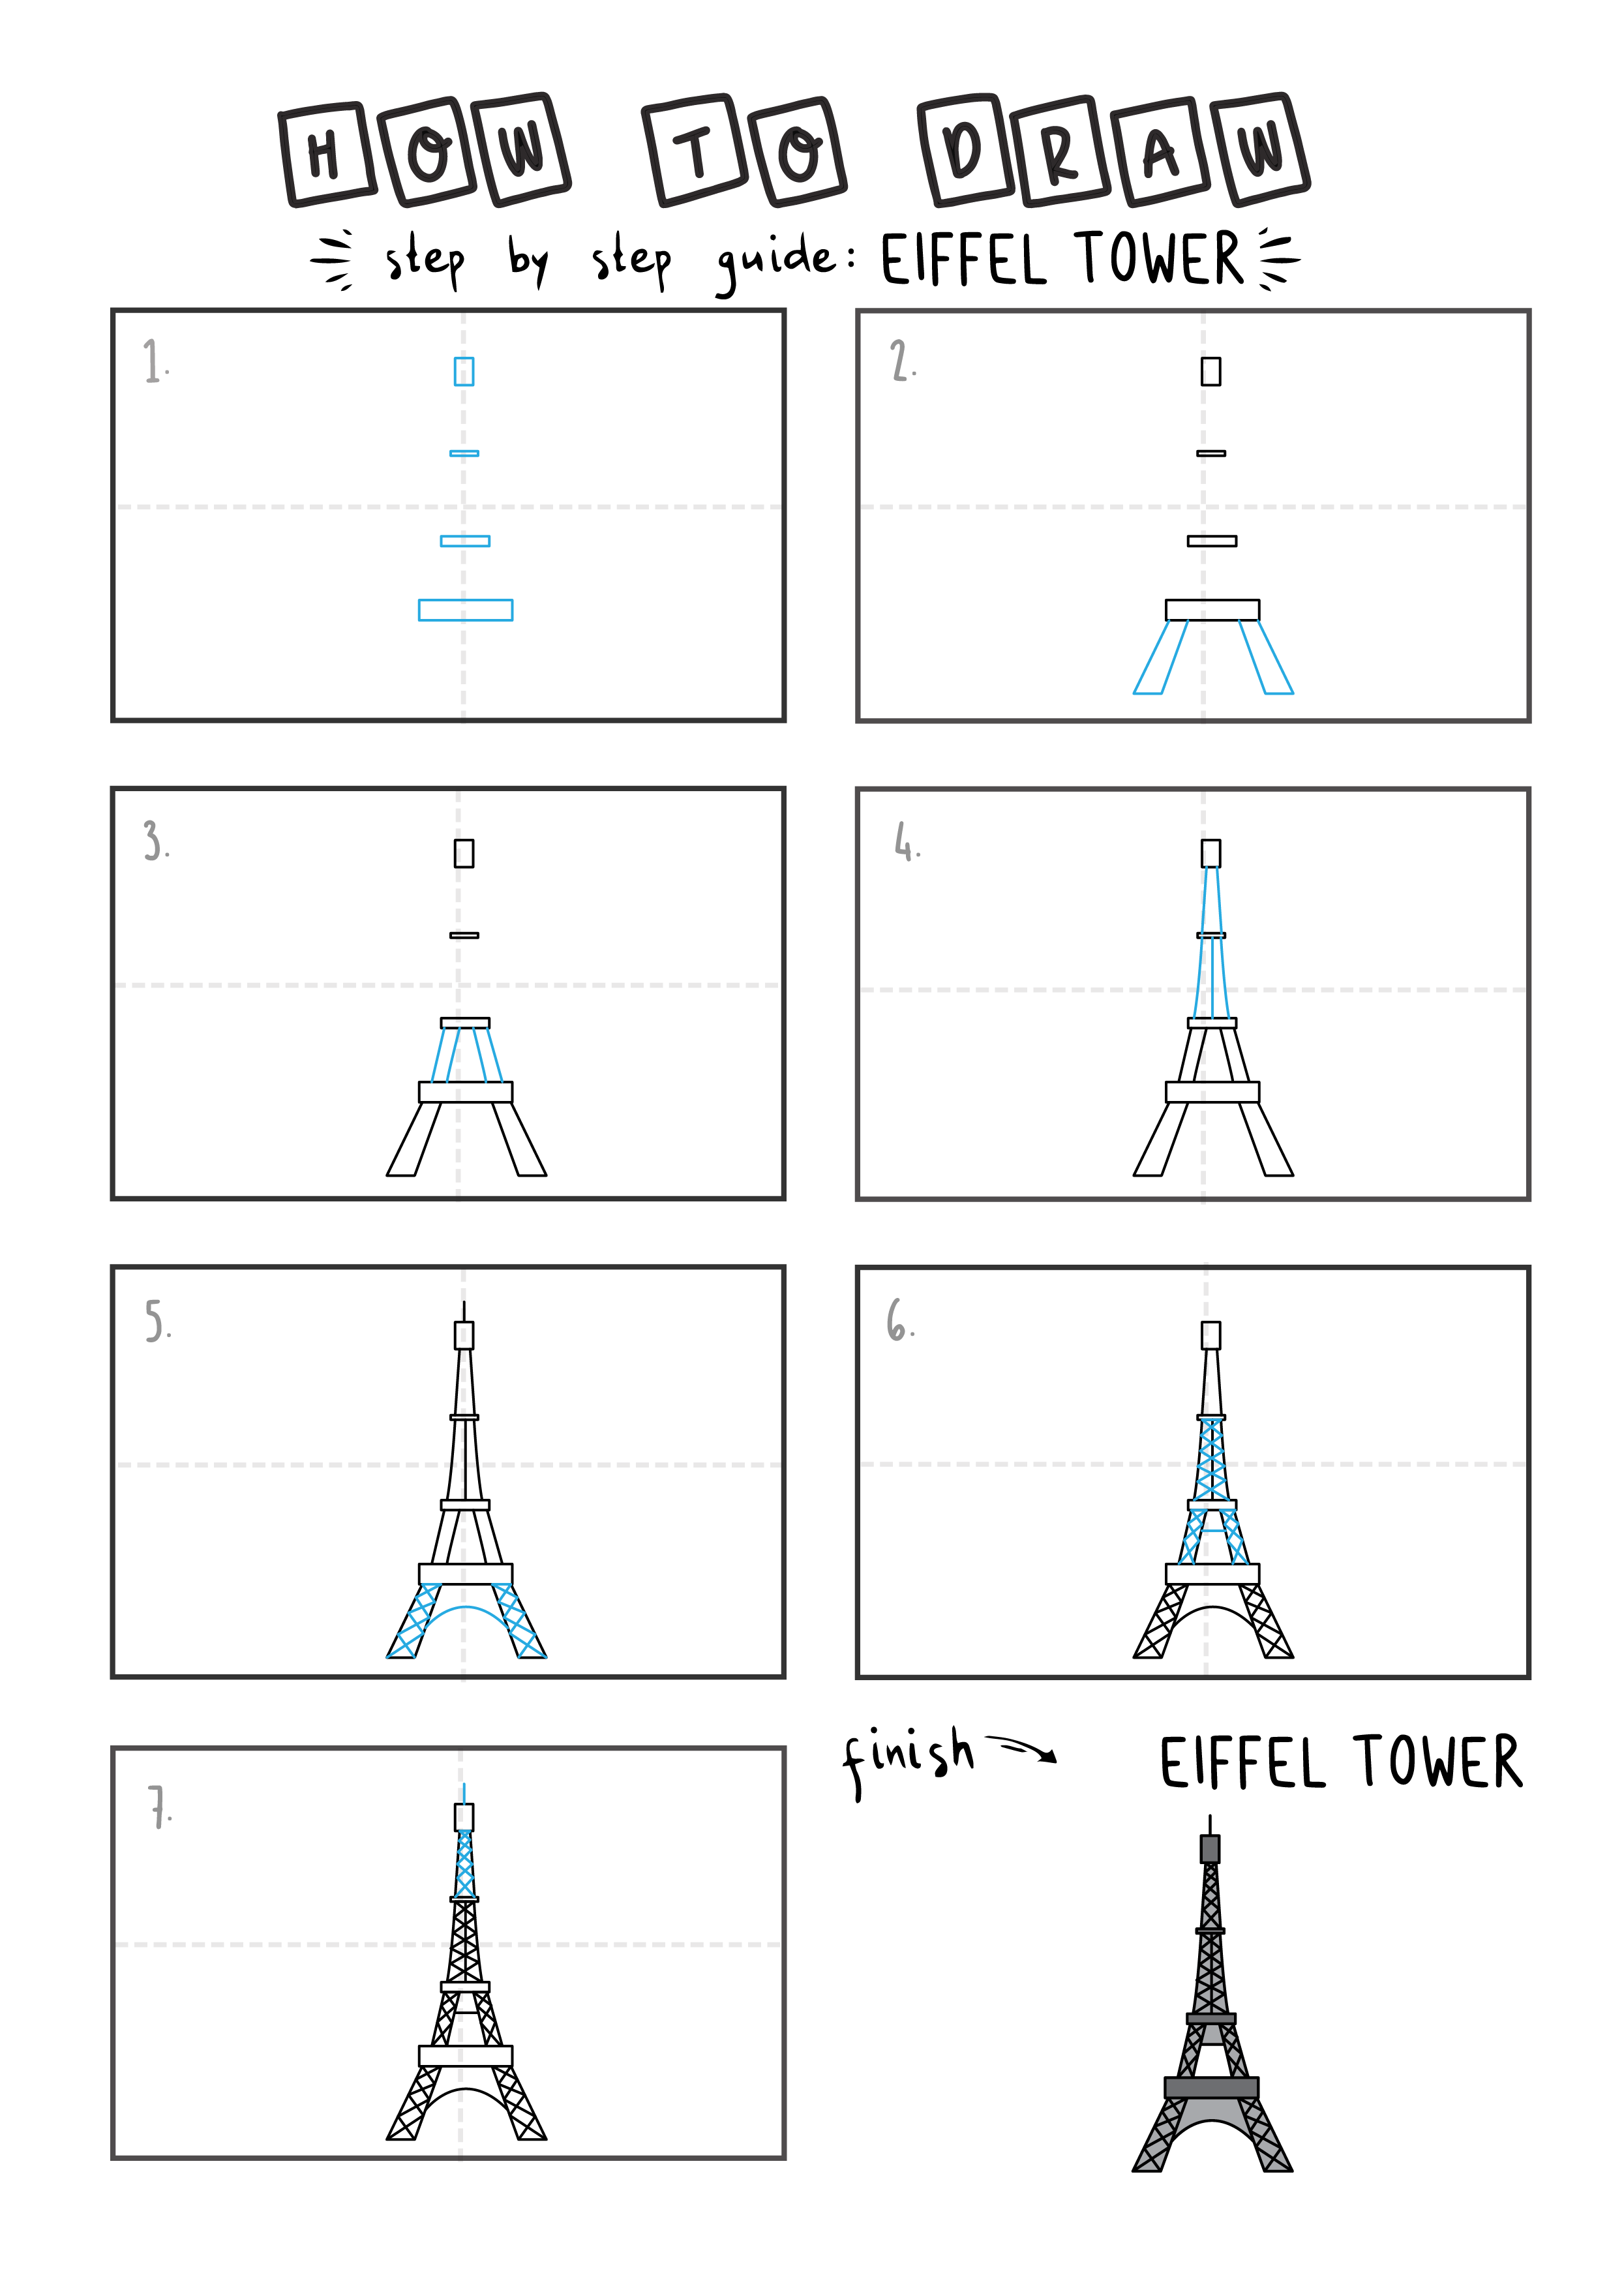 How To Draw a EIFFEL TOWER Easy Step By Step For Kids Illustration Art Ideas